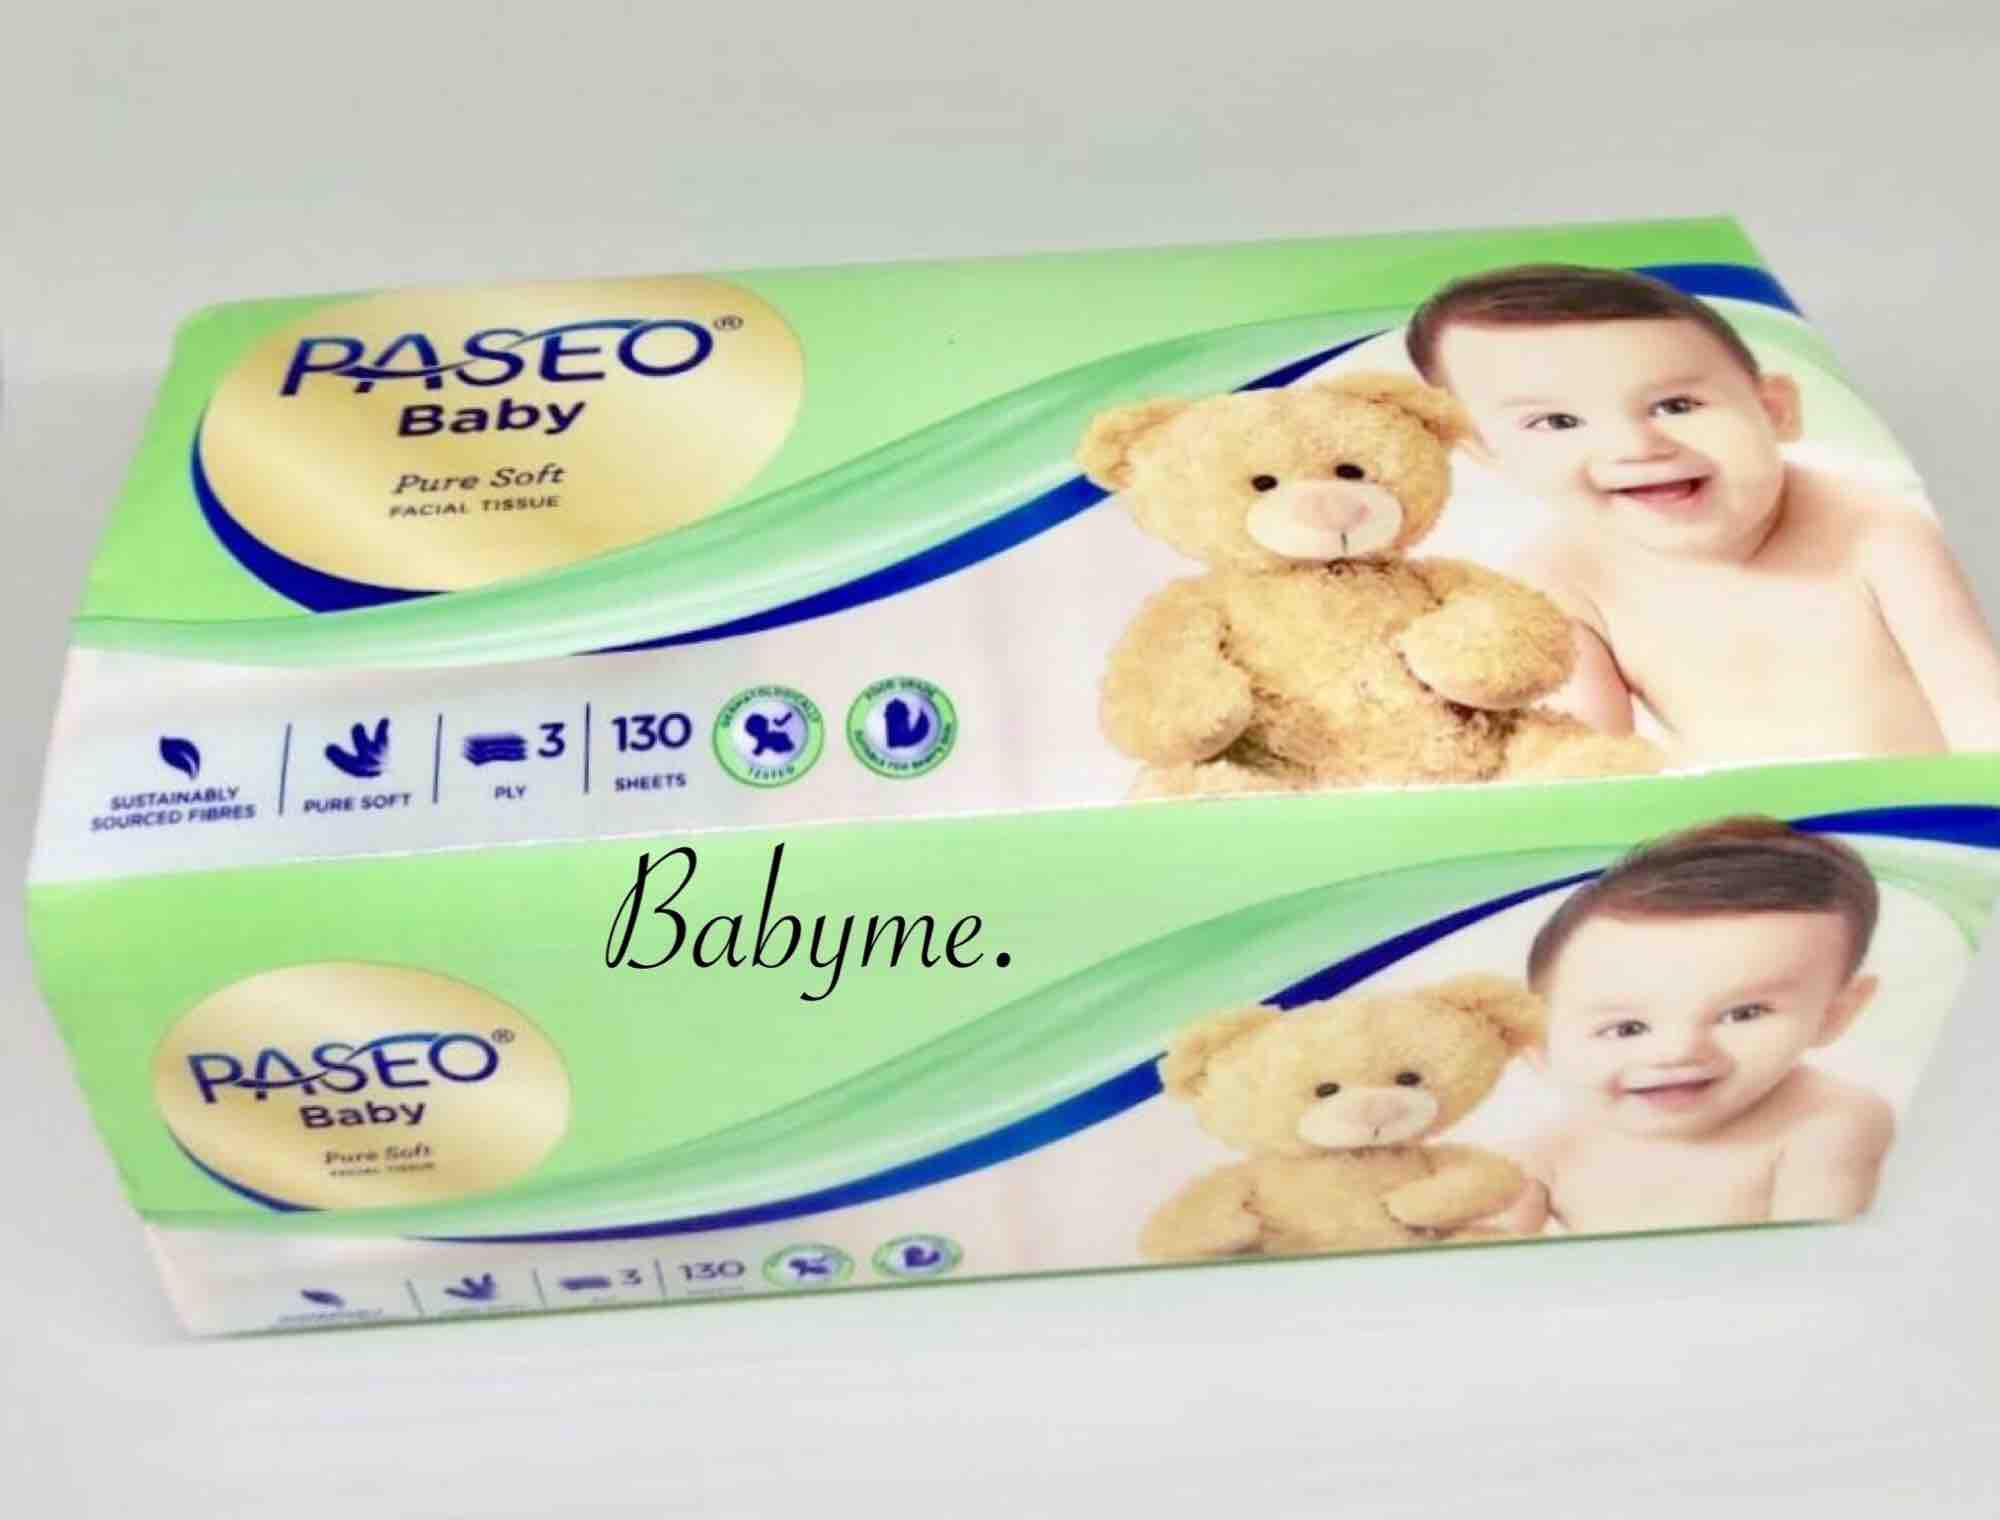 Tissue Tisu Paseo Baby 3ply 130sheet 1pcs By Babyme..